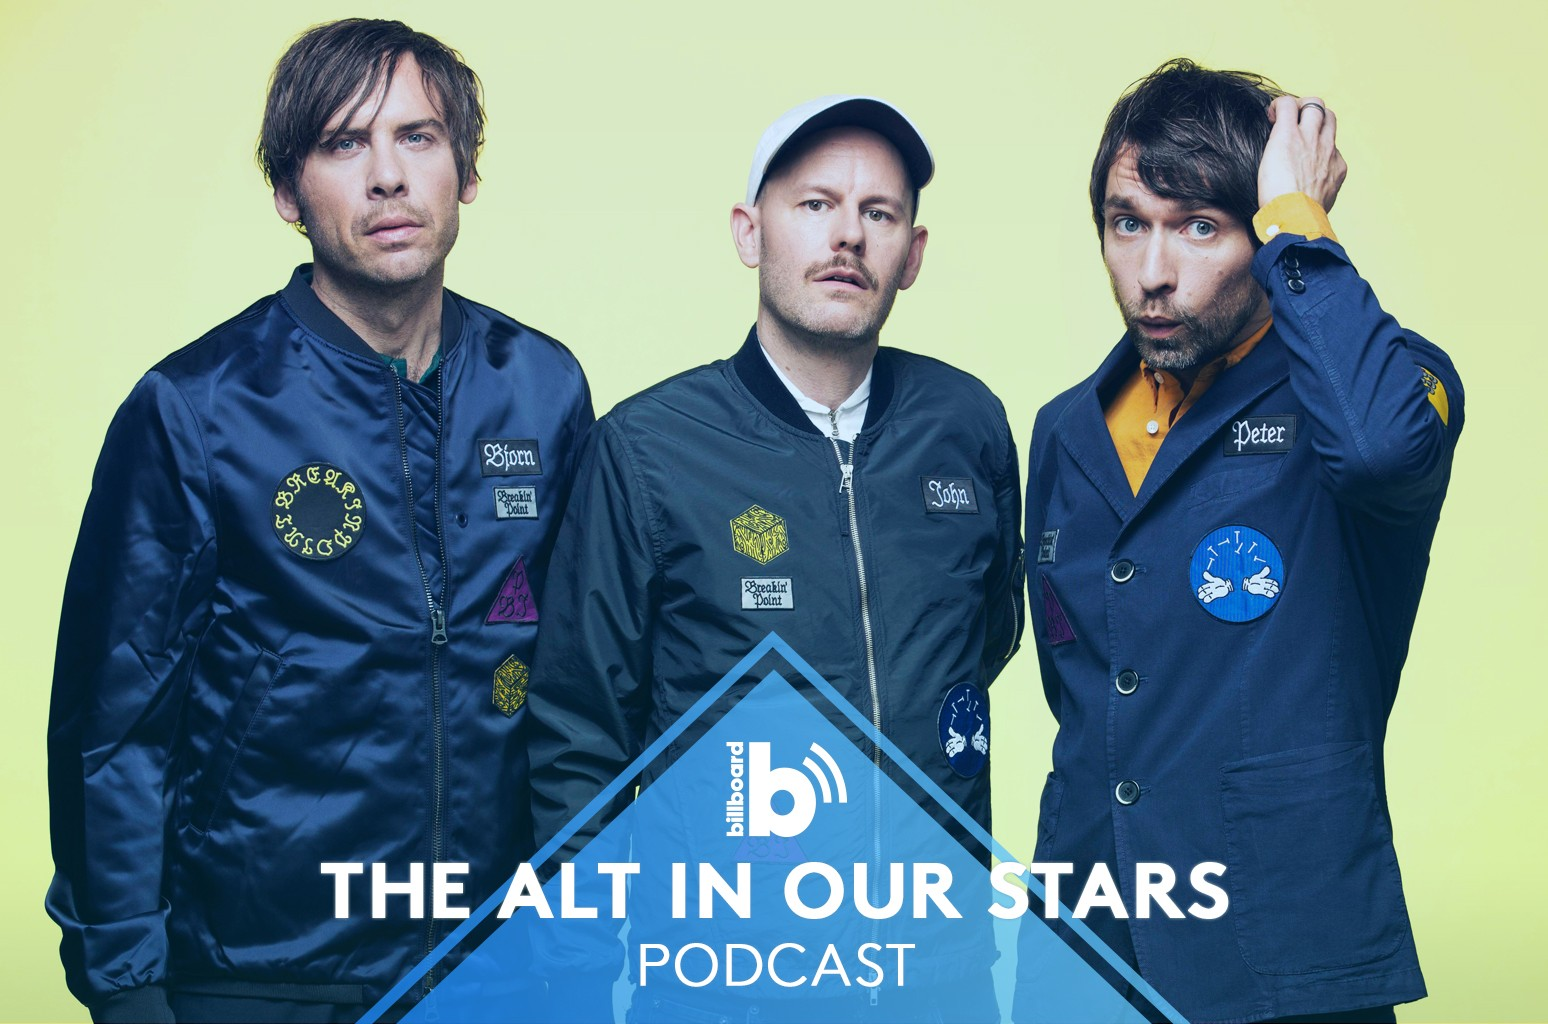 The Alt in Our Stars Podcast featuring: Peter Bjorn and John